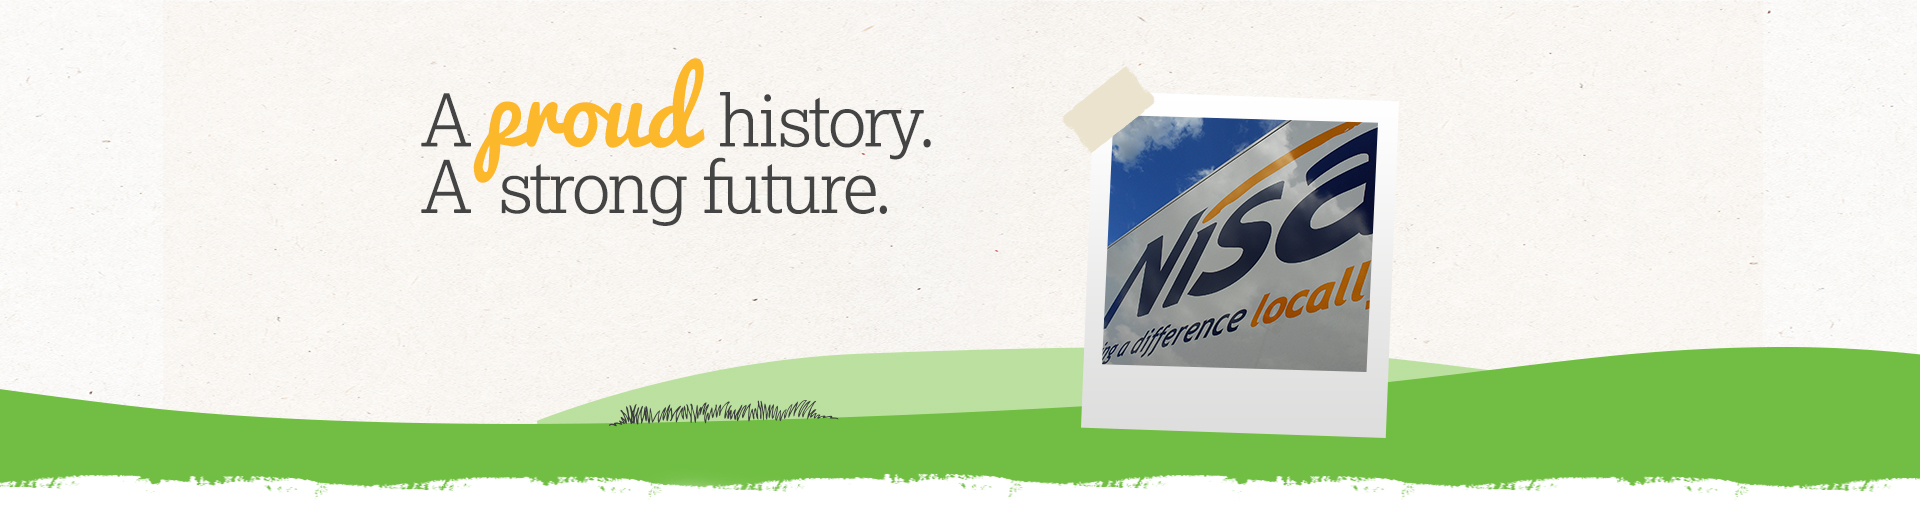 A proud history. A strong future. Established in 1977, Nisa is unique in every sense of the word, from its humble roots to its member-owned structure.